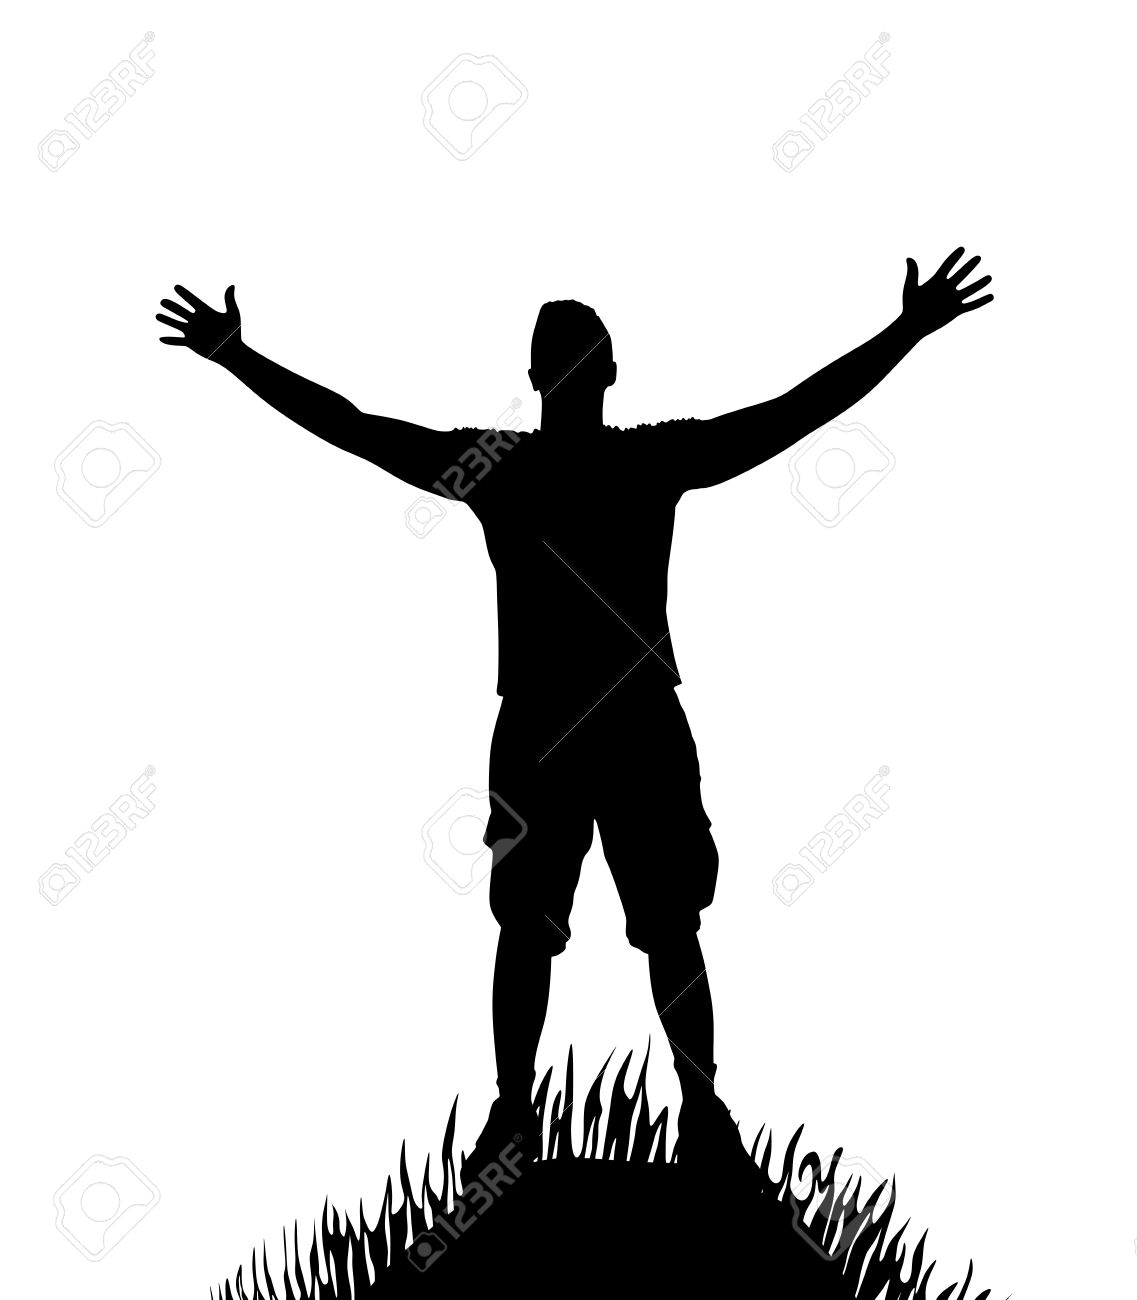 1137x1300 Jesus Arms Open Hill Silhouette Clipart Amp Jesus Arms Open